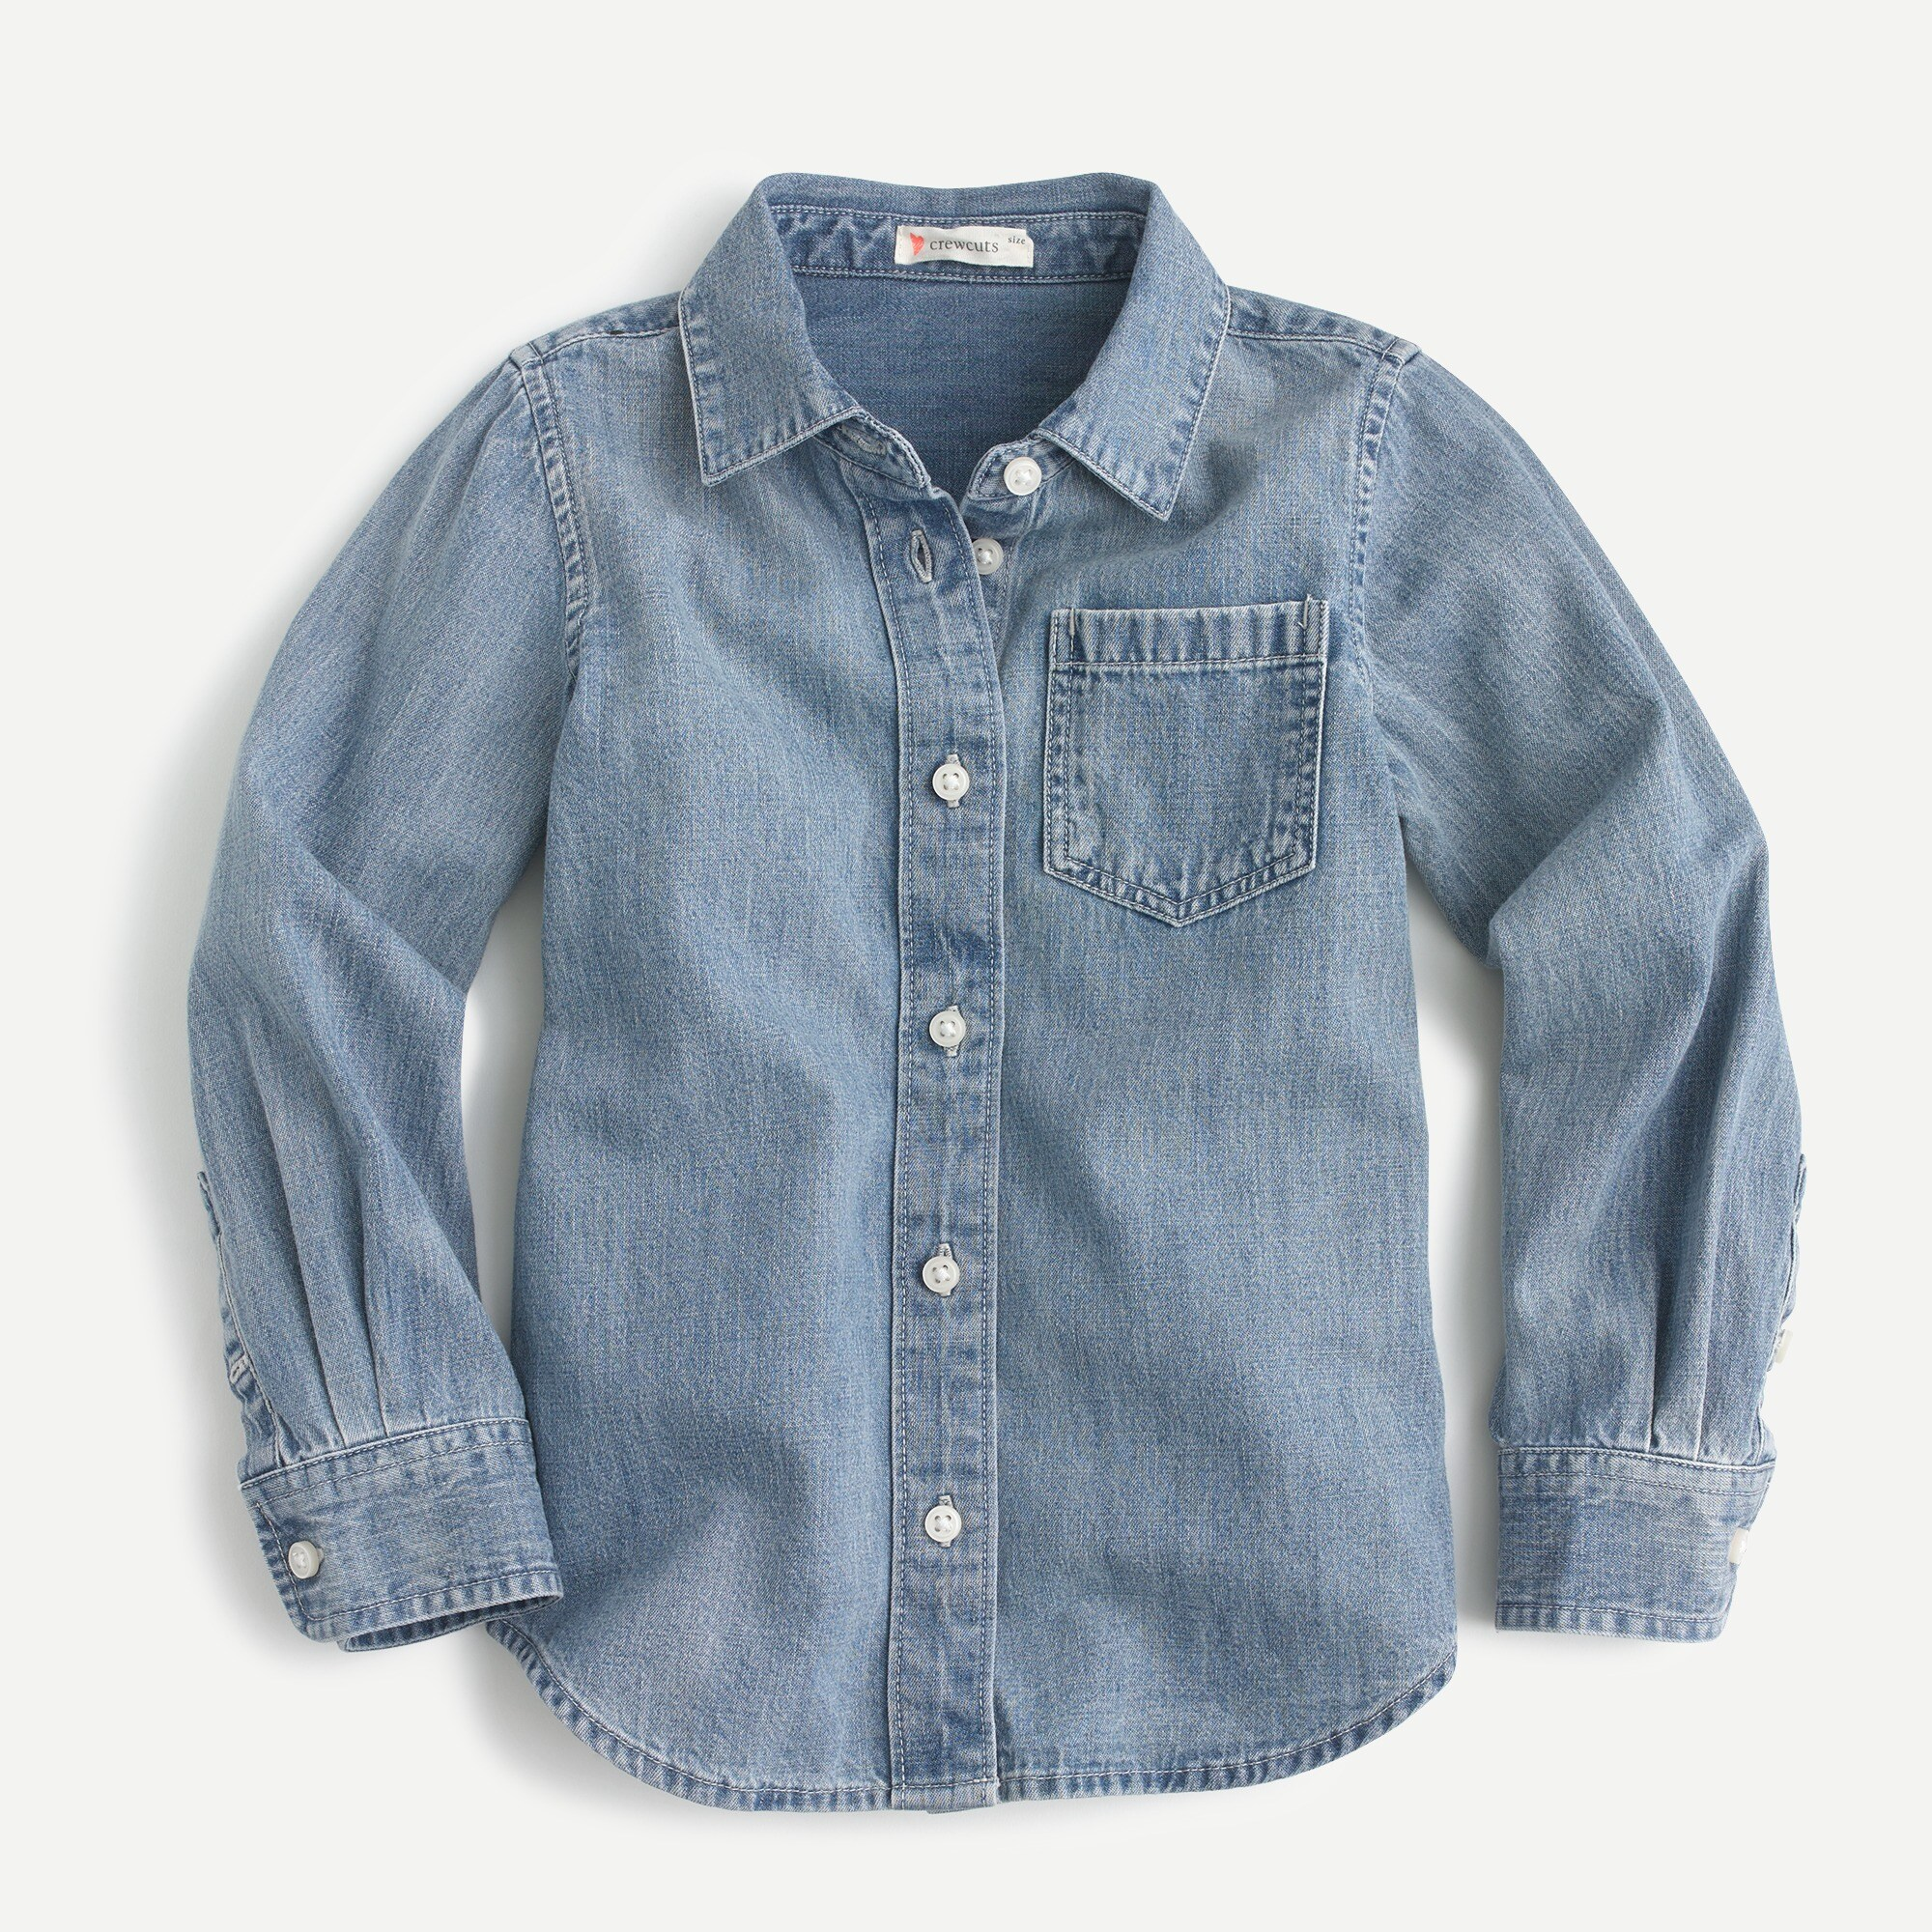 girls Girls' 365 chambray shirt